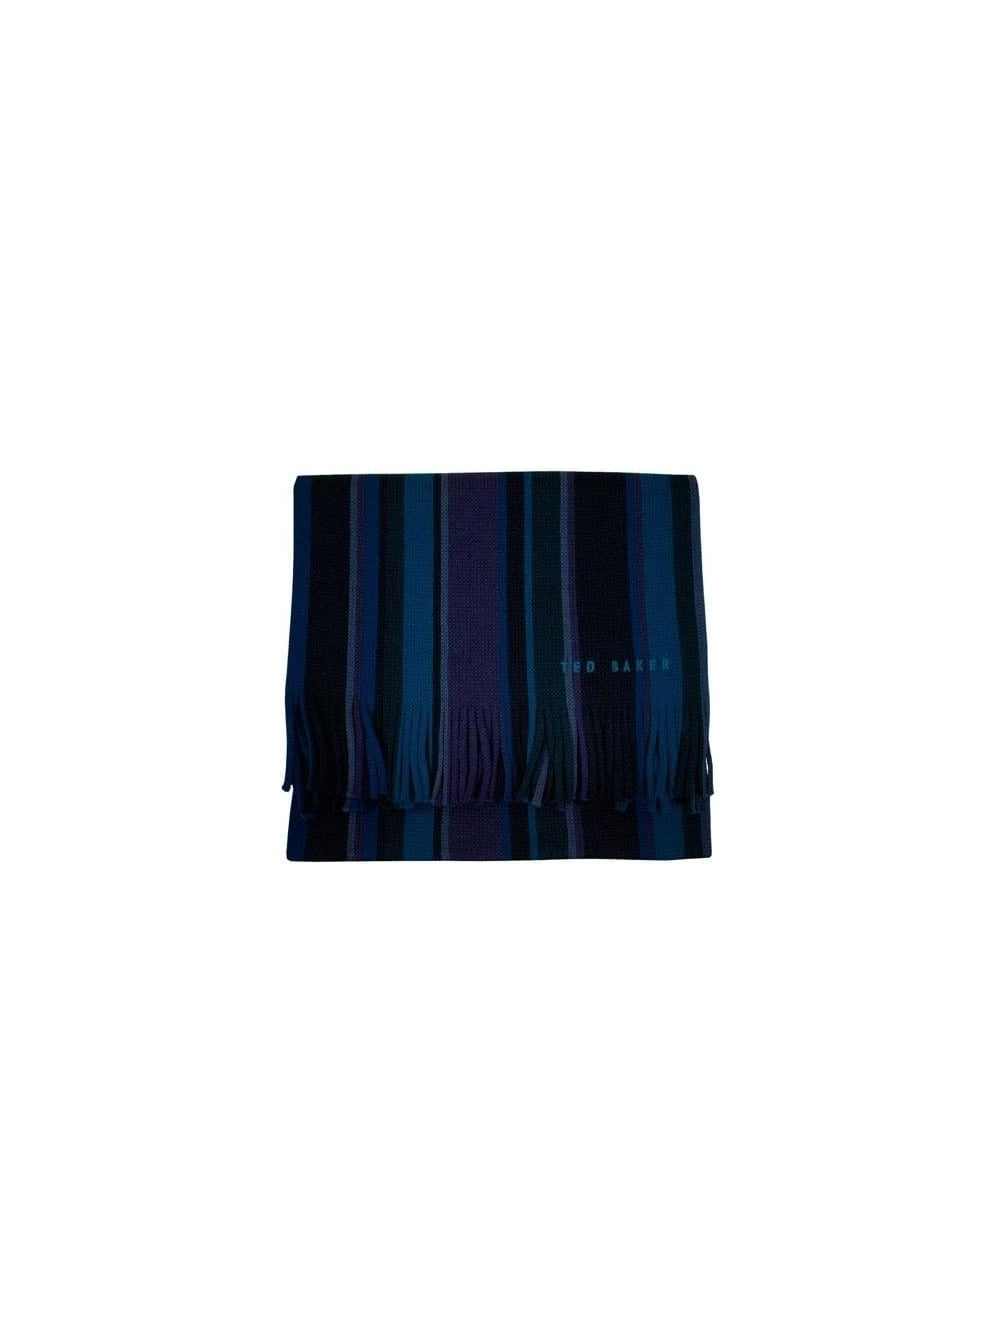 a3311b3d68f8a Ted Baker - Ted Baker Coprobs Multi Stripe Scarf - Navy - Ted Baker ...